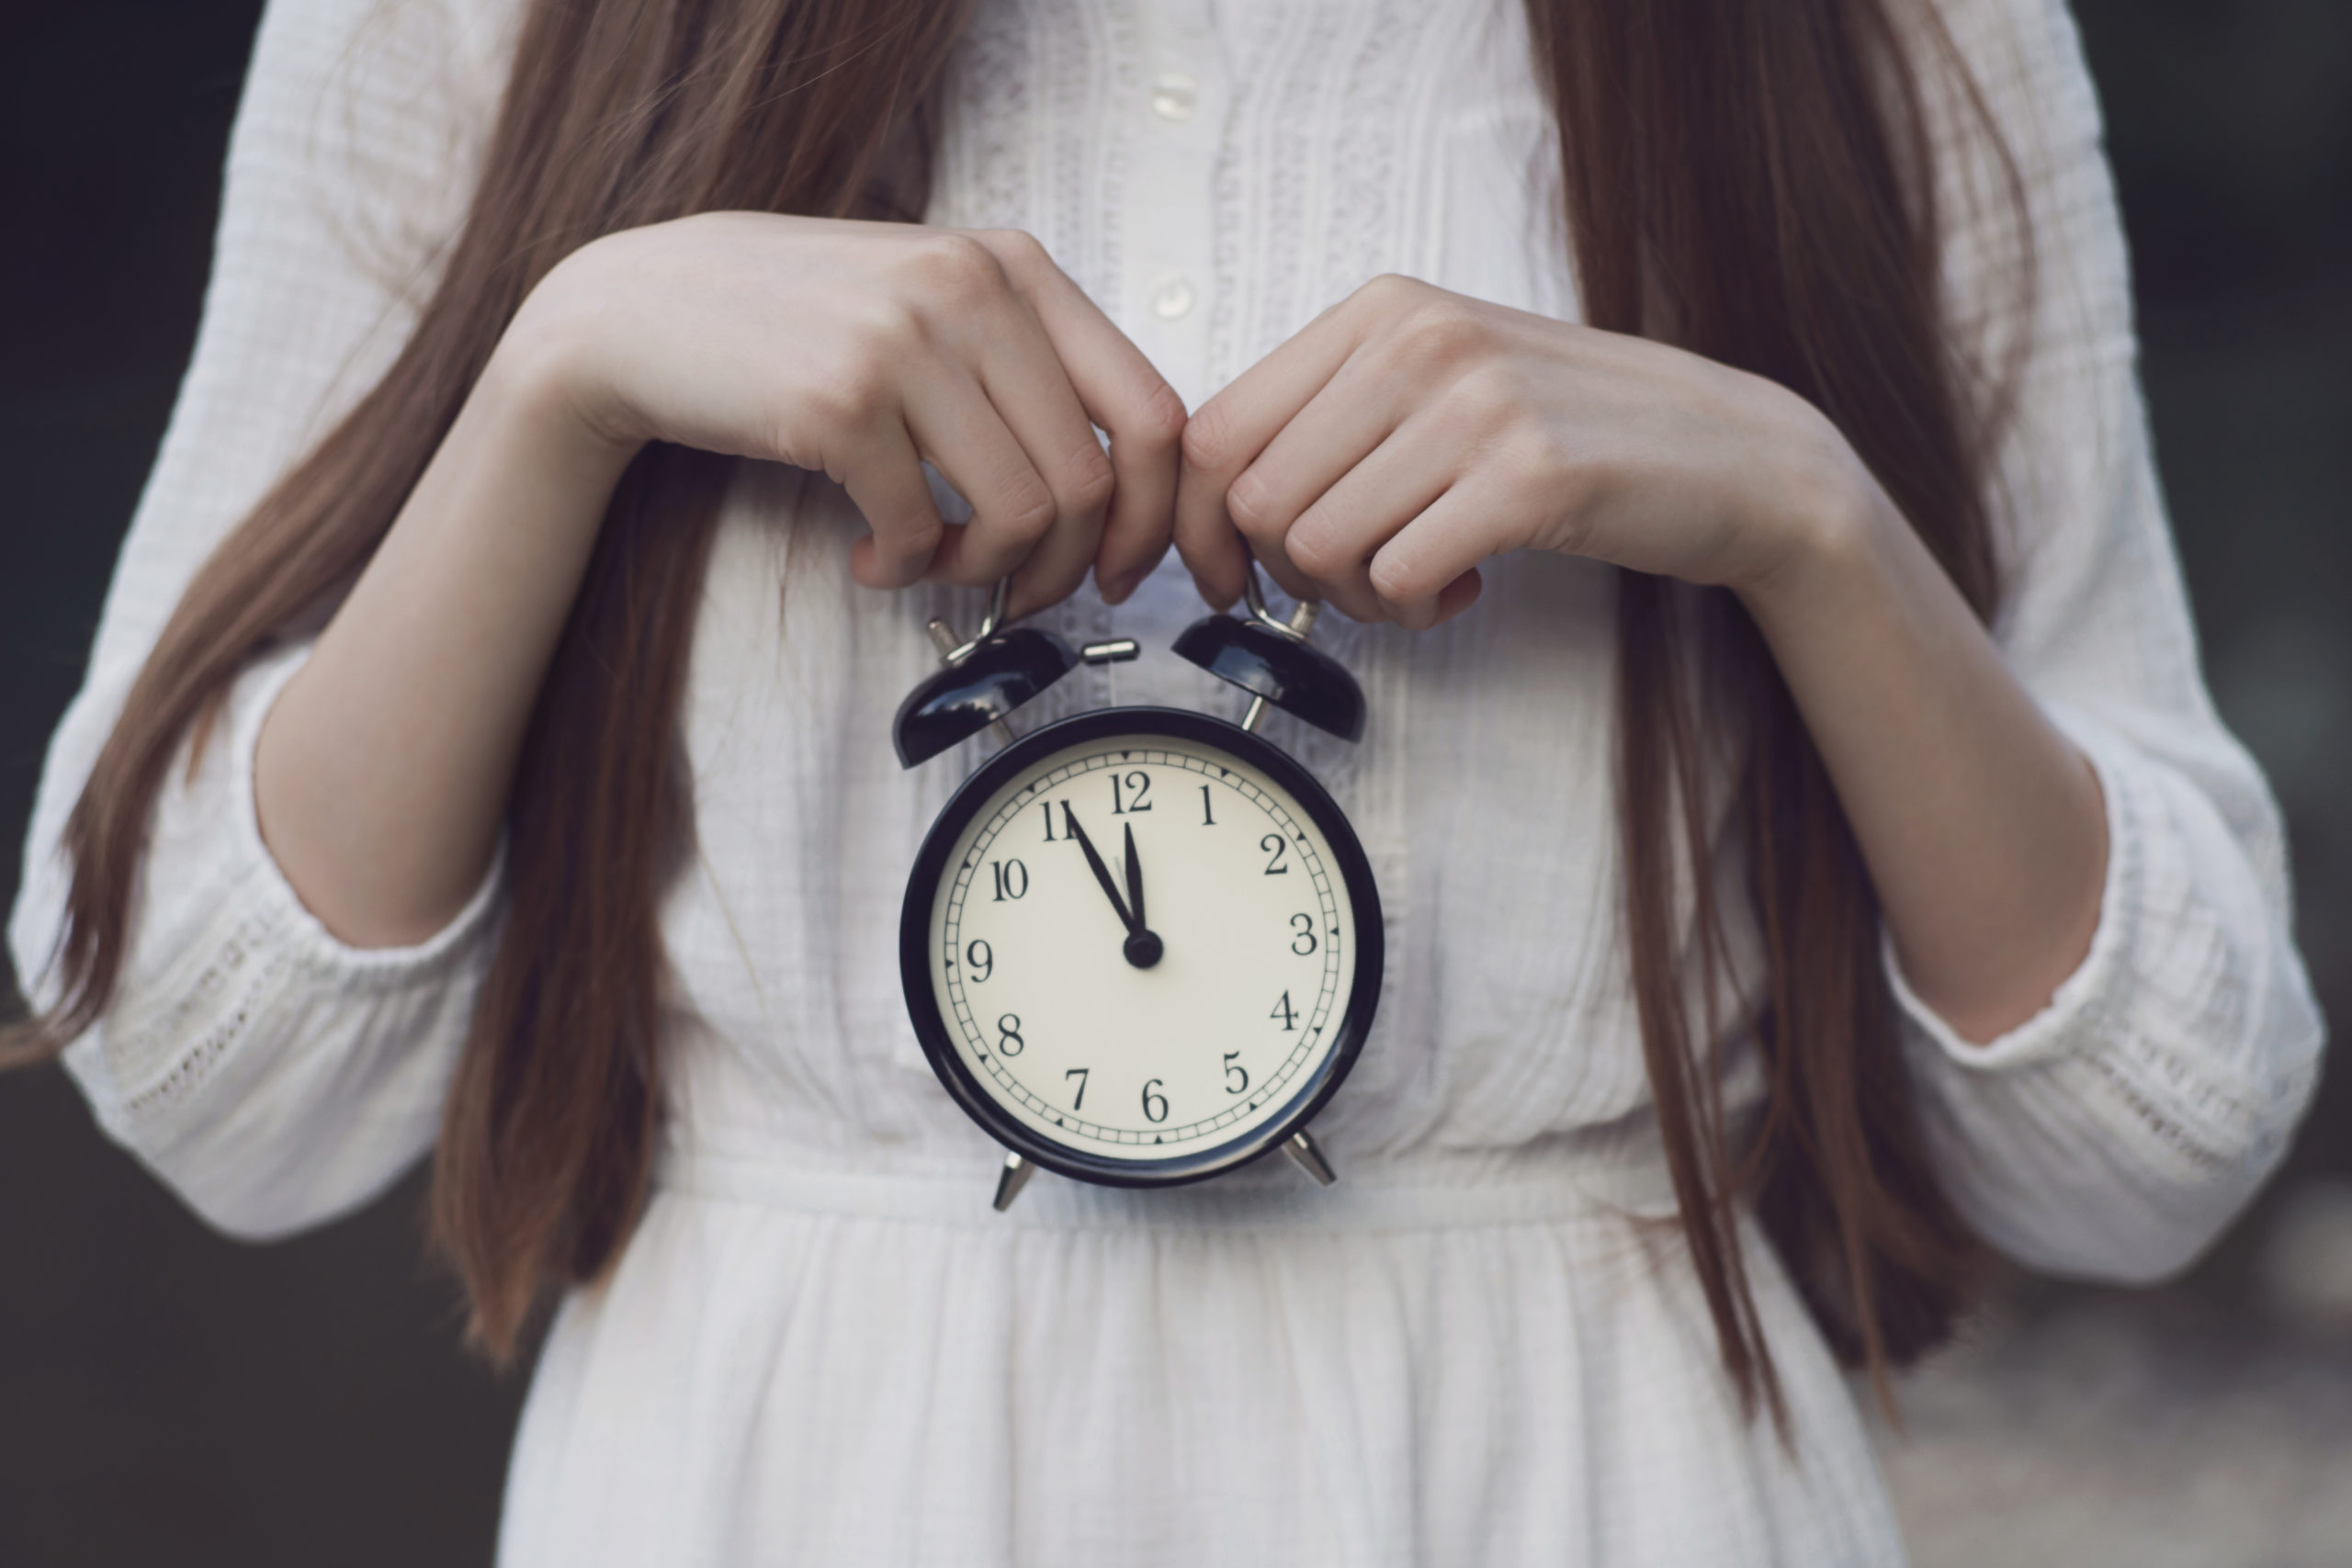 Five Songs to Help You Persevere in the Waiting